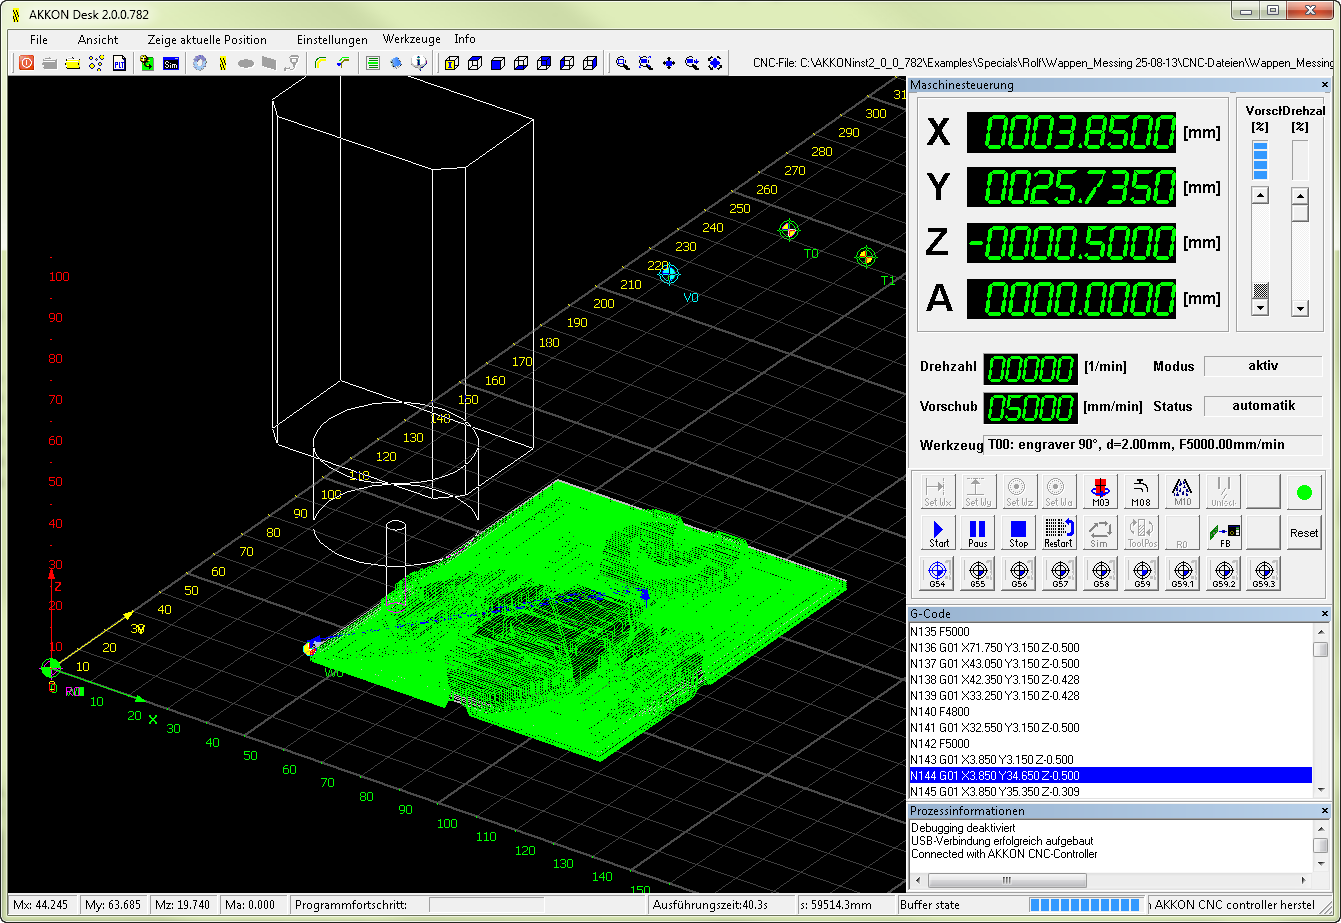 AKKONDesk CNC software